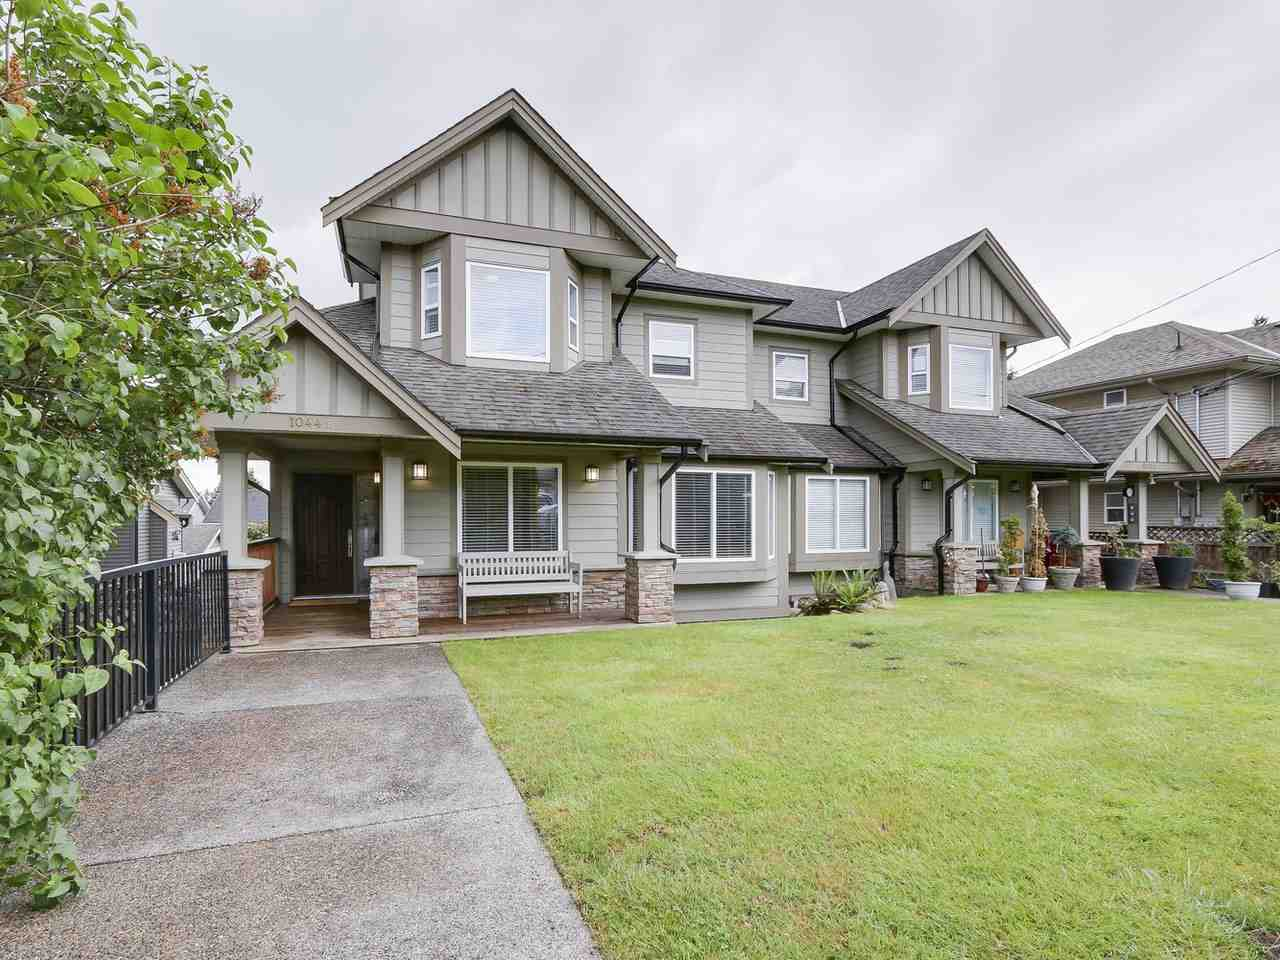 Main Photo: 1044B CHARLAND Avenue in Coquitlam: Central Coquitlam House 1/2 Duplex for sale : MLS® # R2172343